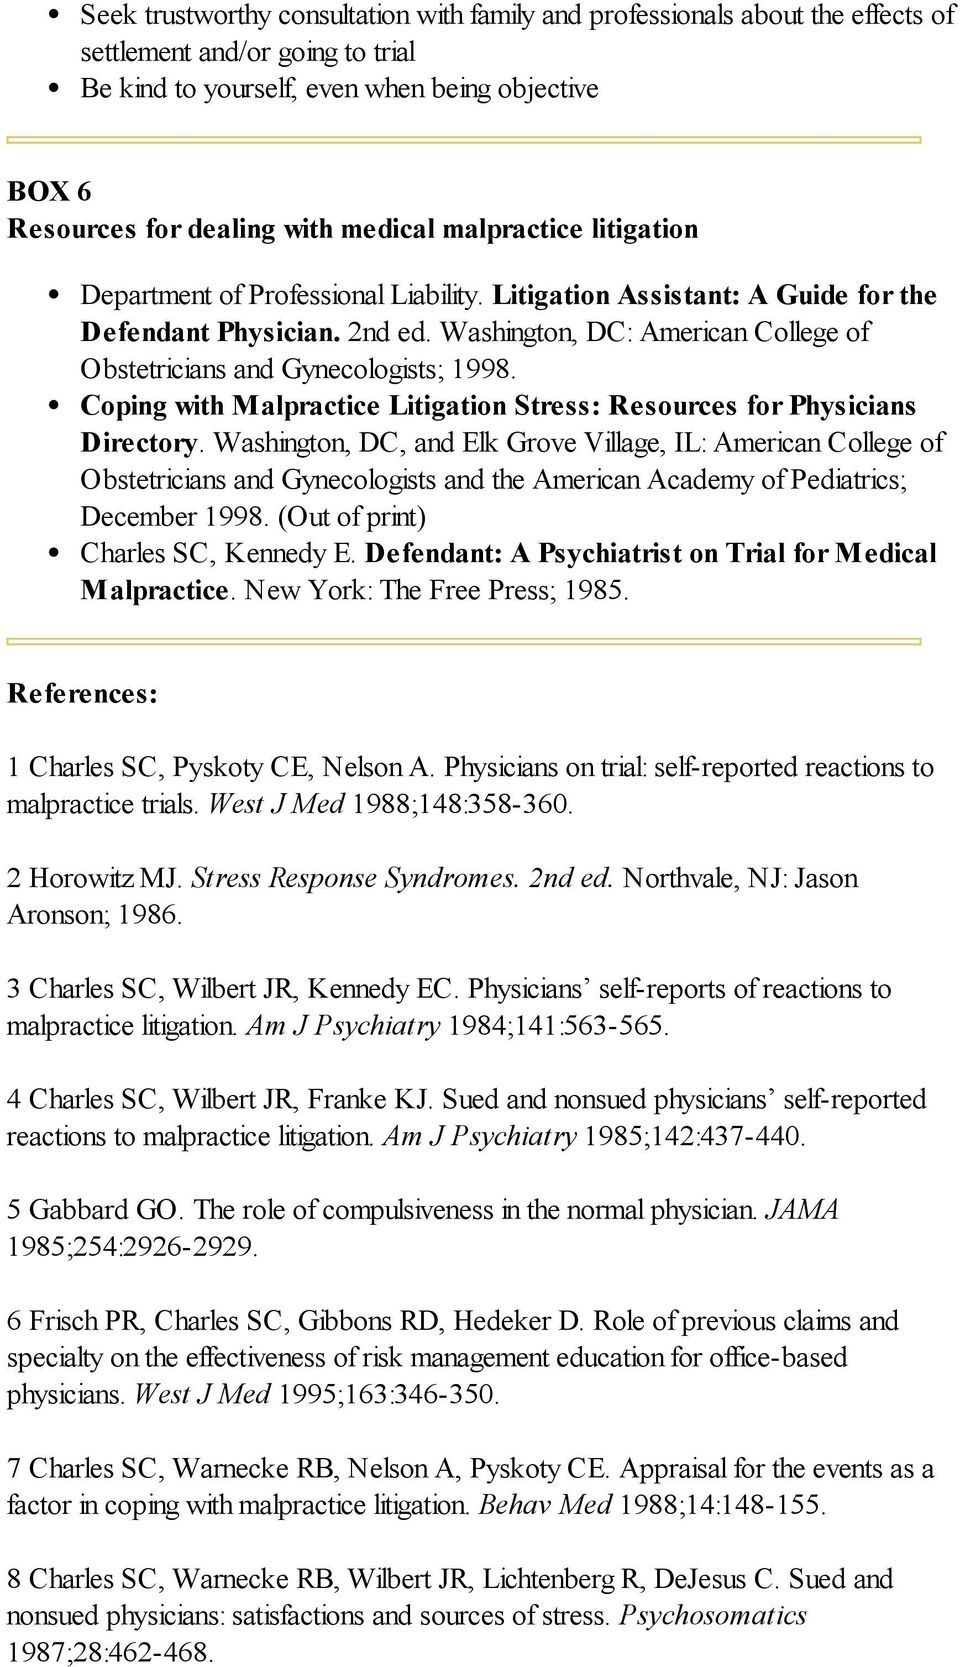 Washington, DC: American College of Obstetricians and Gynecologists; 1998. Coping with Malpractice Litigation Stress: Resources for Physicians Directory.